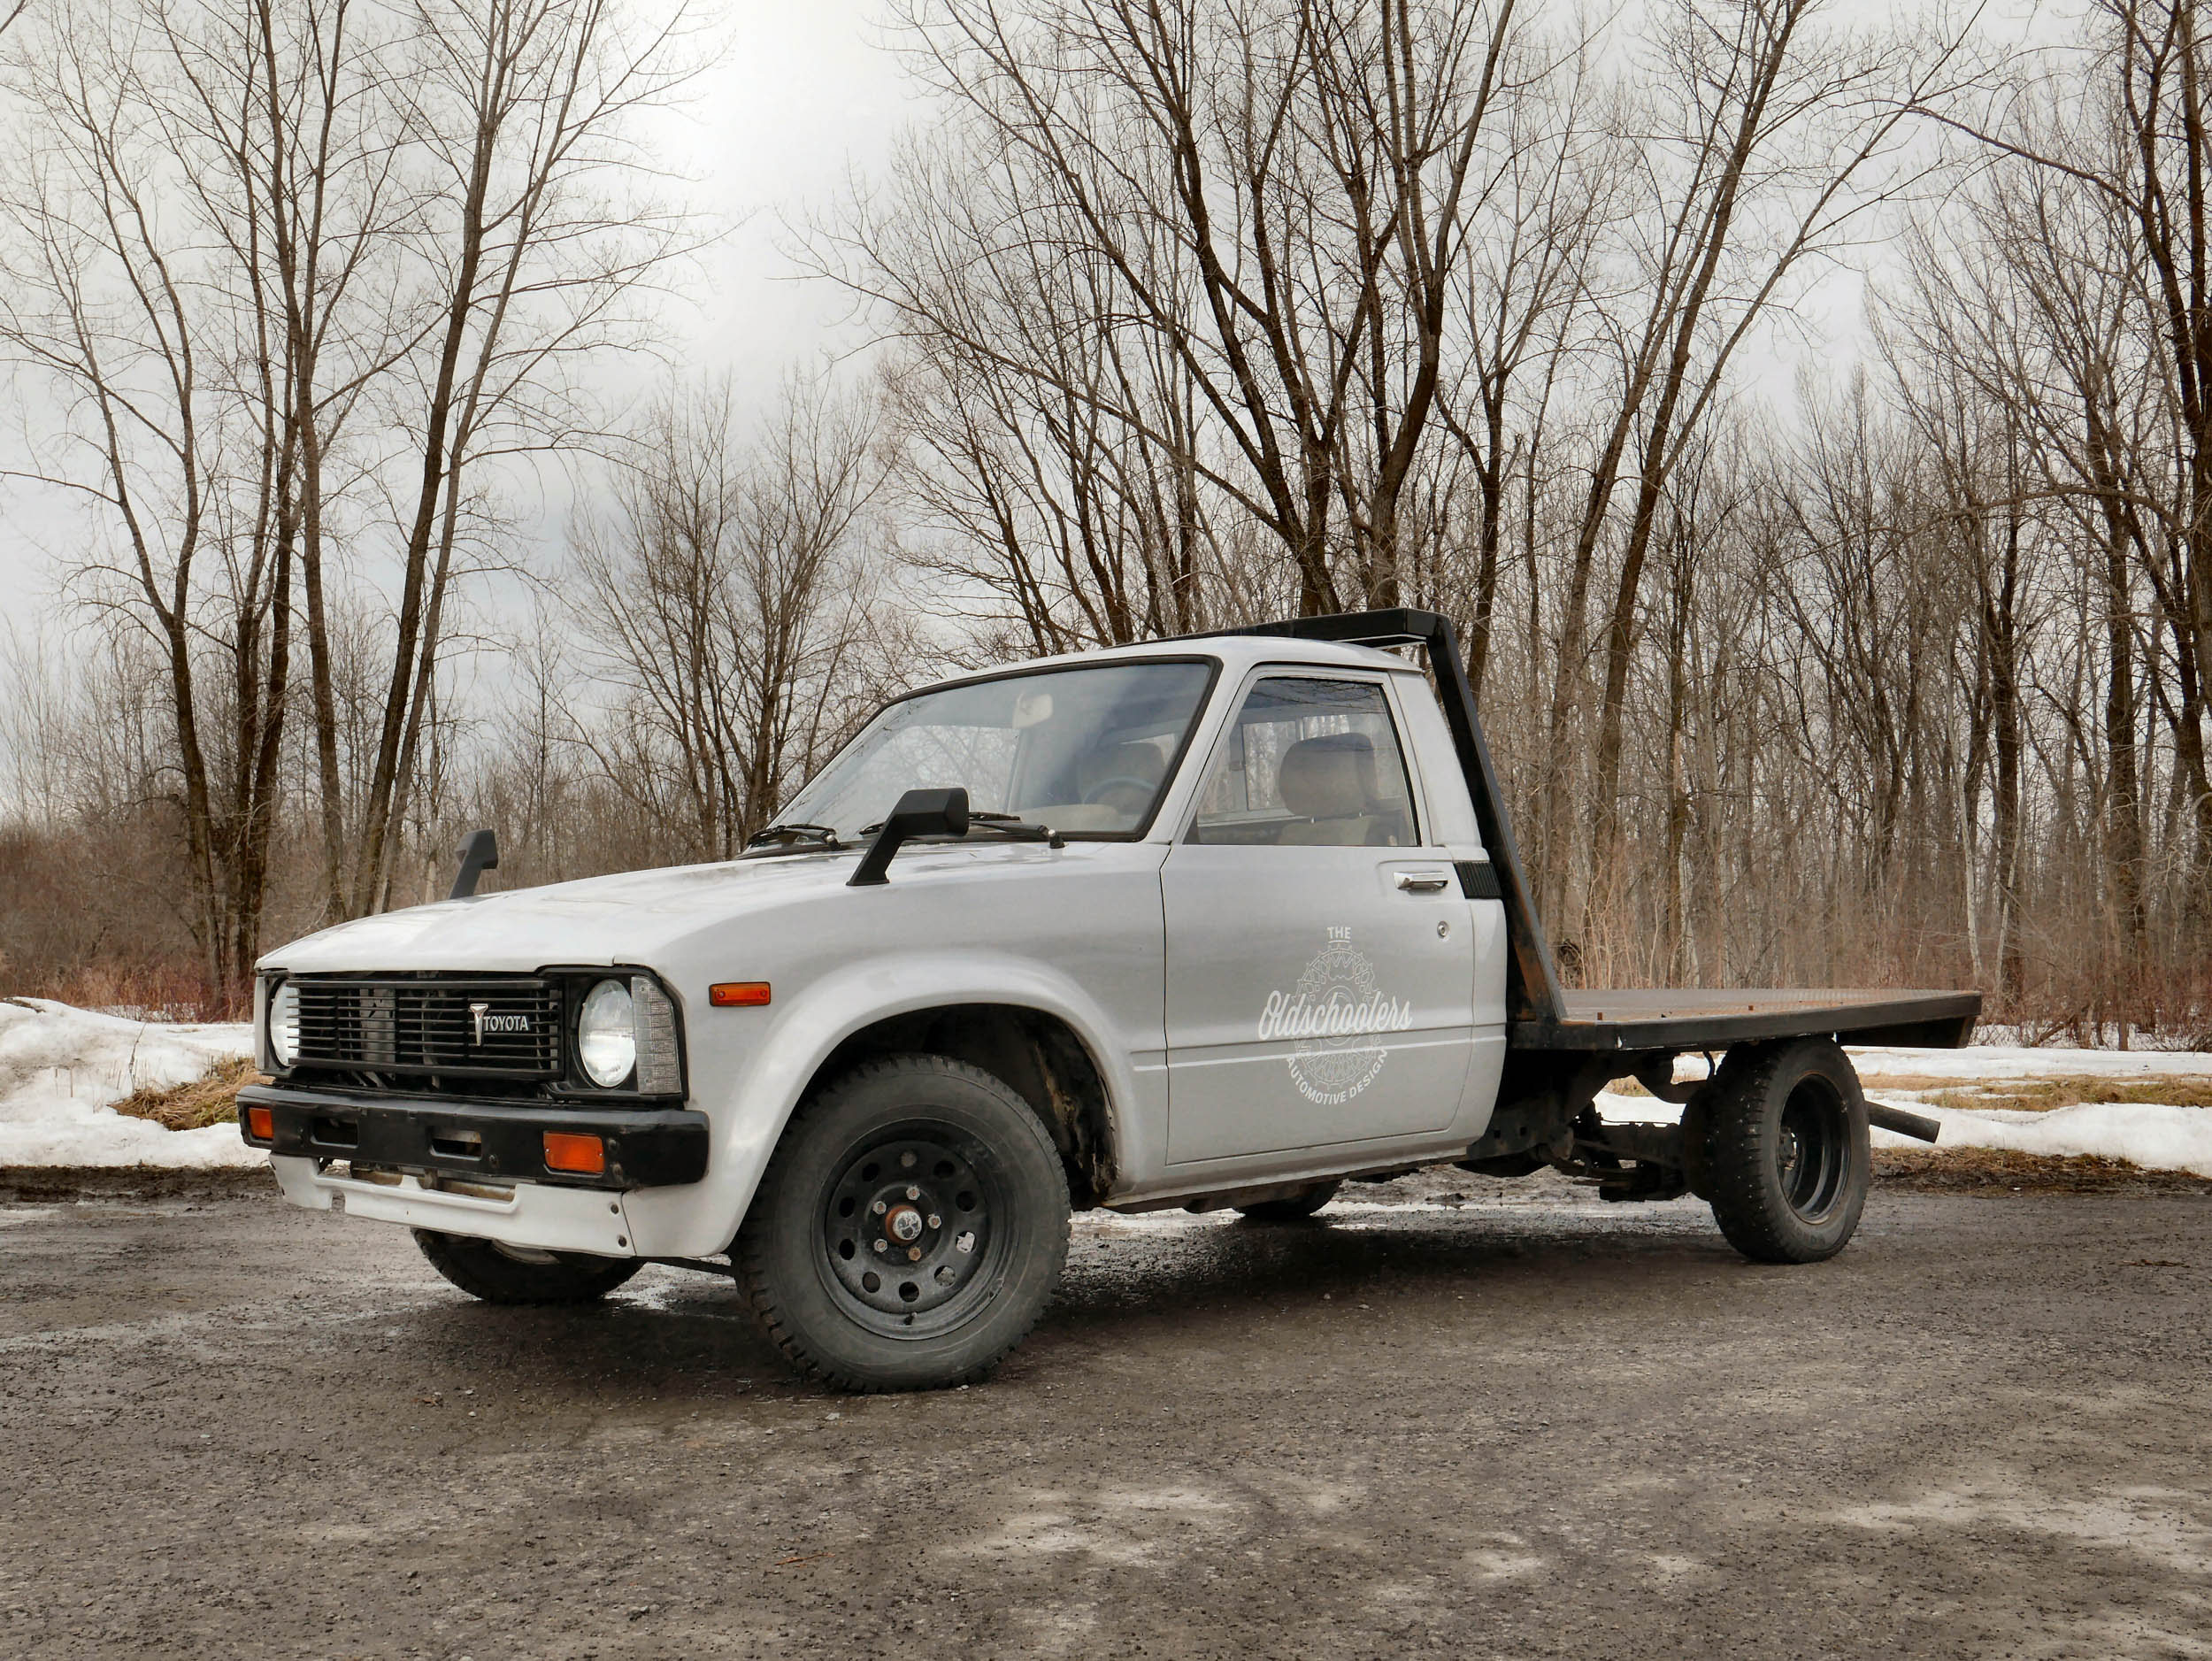 1980 Toyota dually flatbed front 3/4 during winter